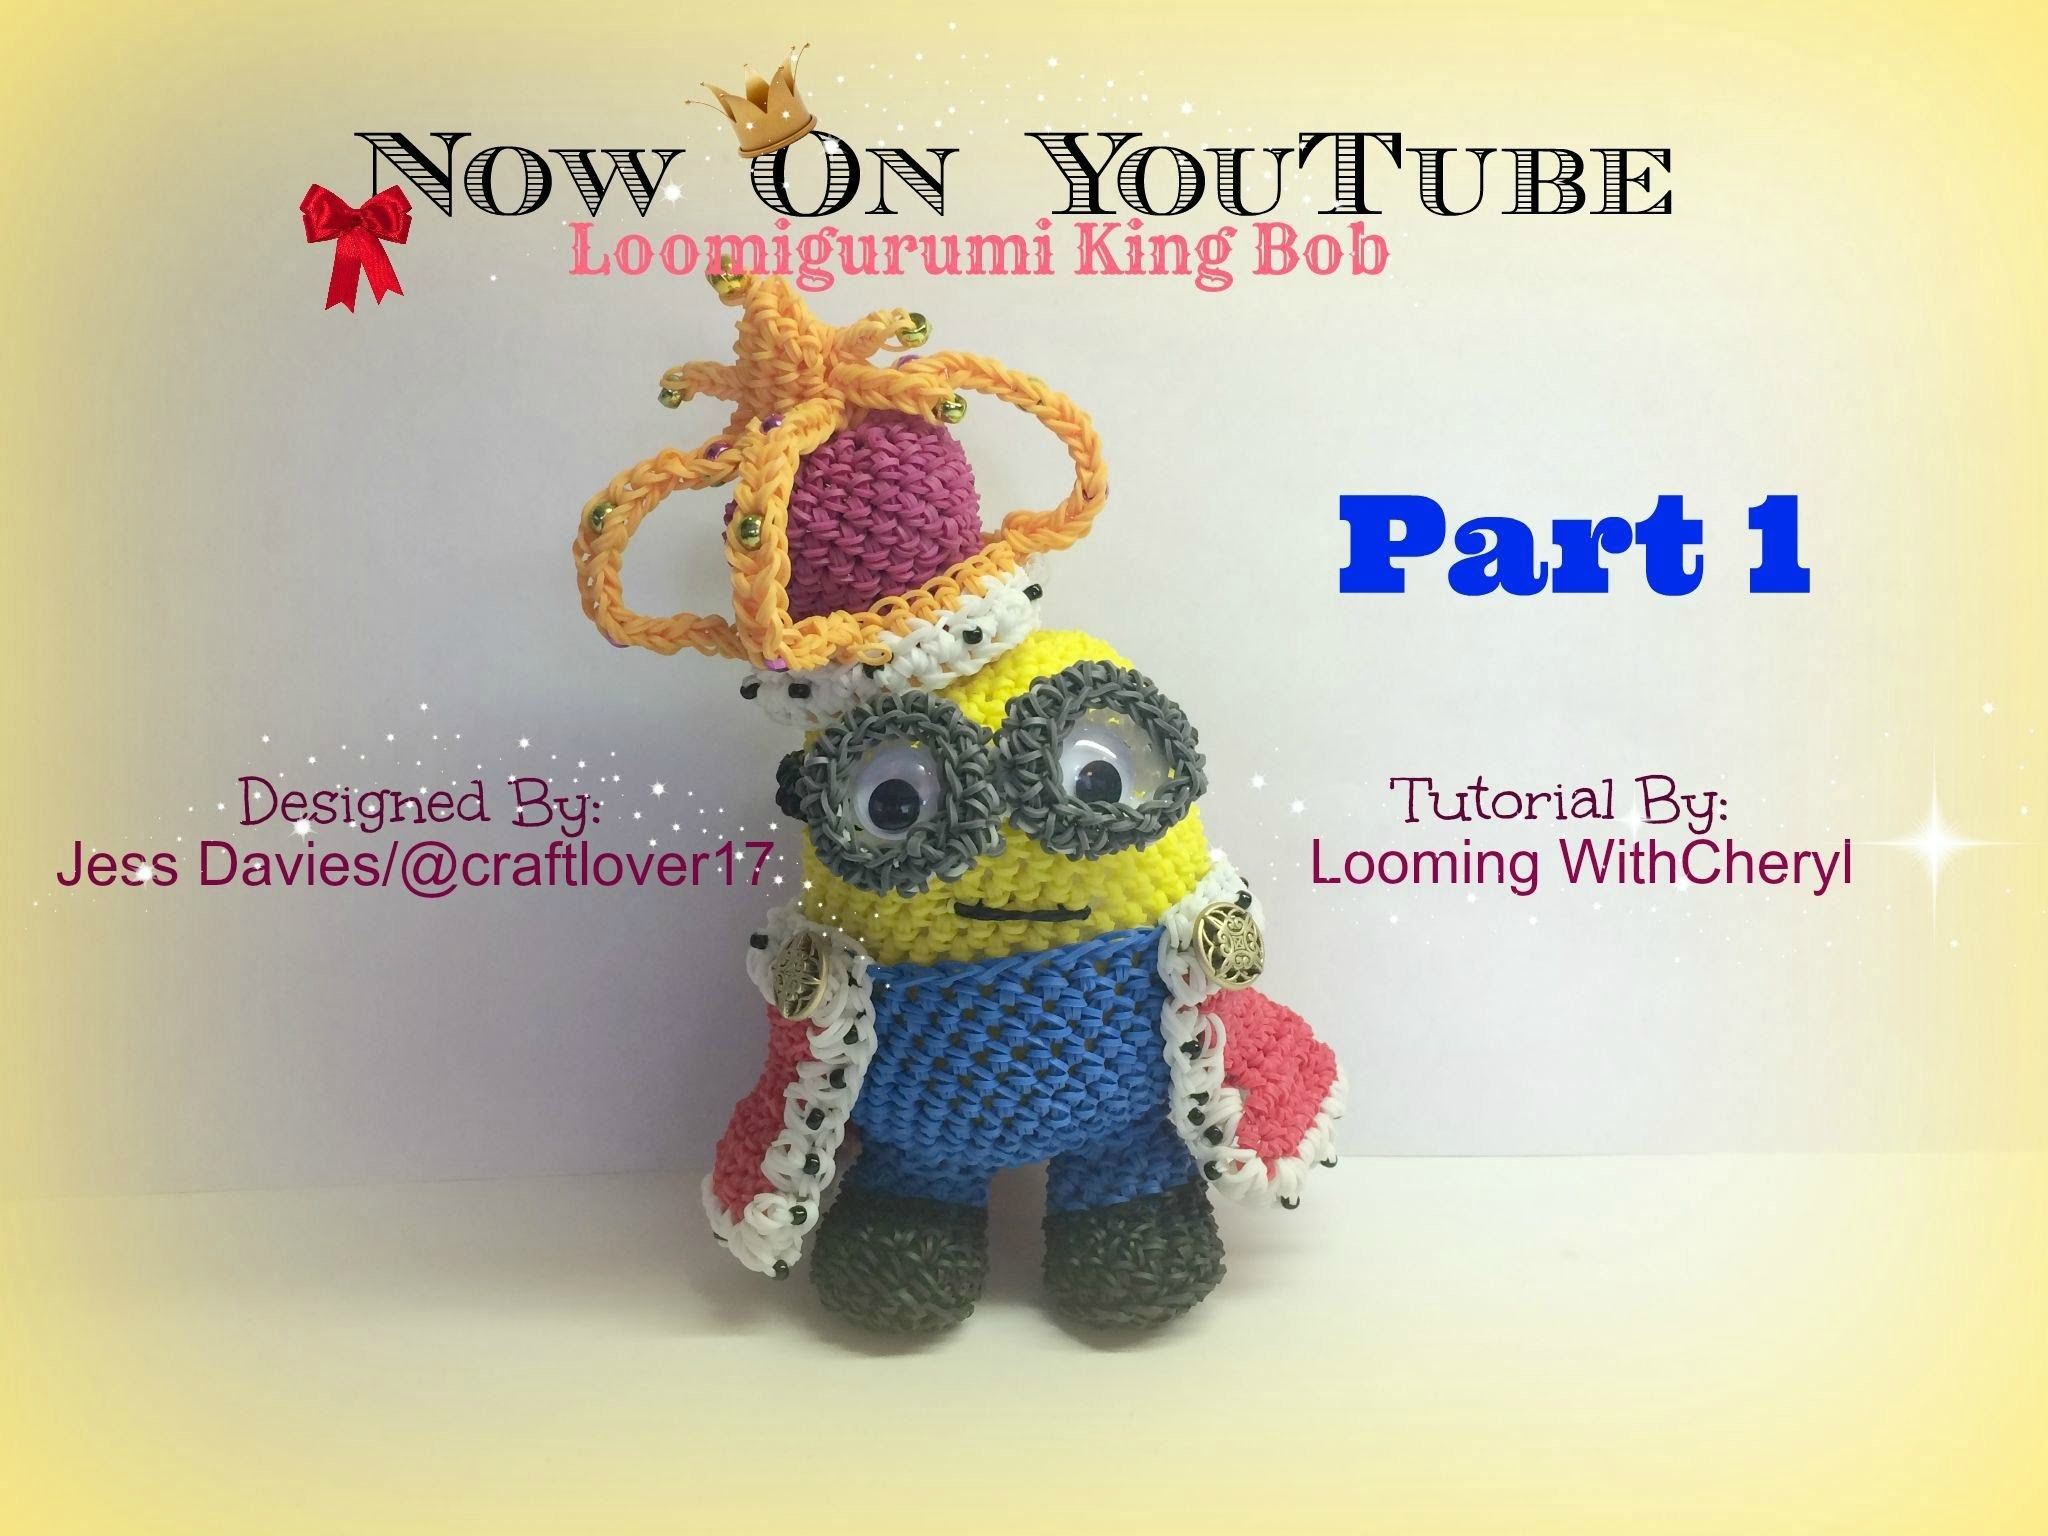 Amigurumi Loom Patterns : Rainbow loom king bob minion part 1 of 4 loomigurumi. amigurumi